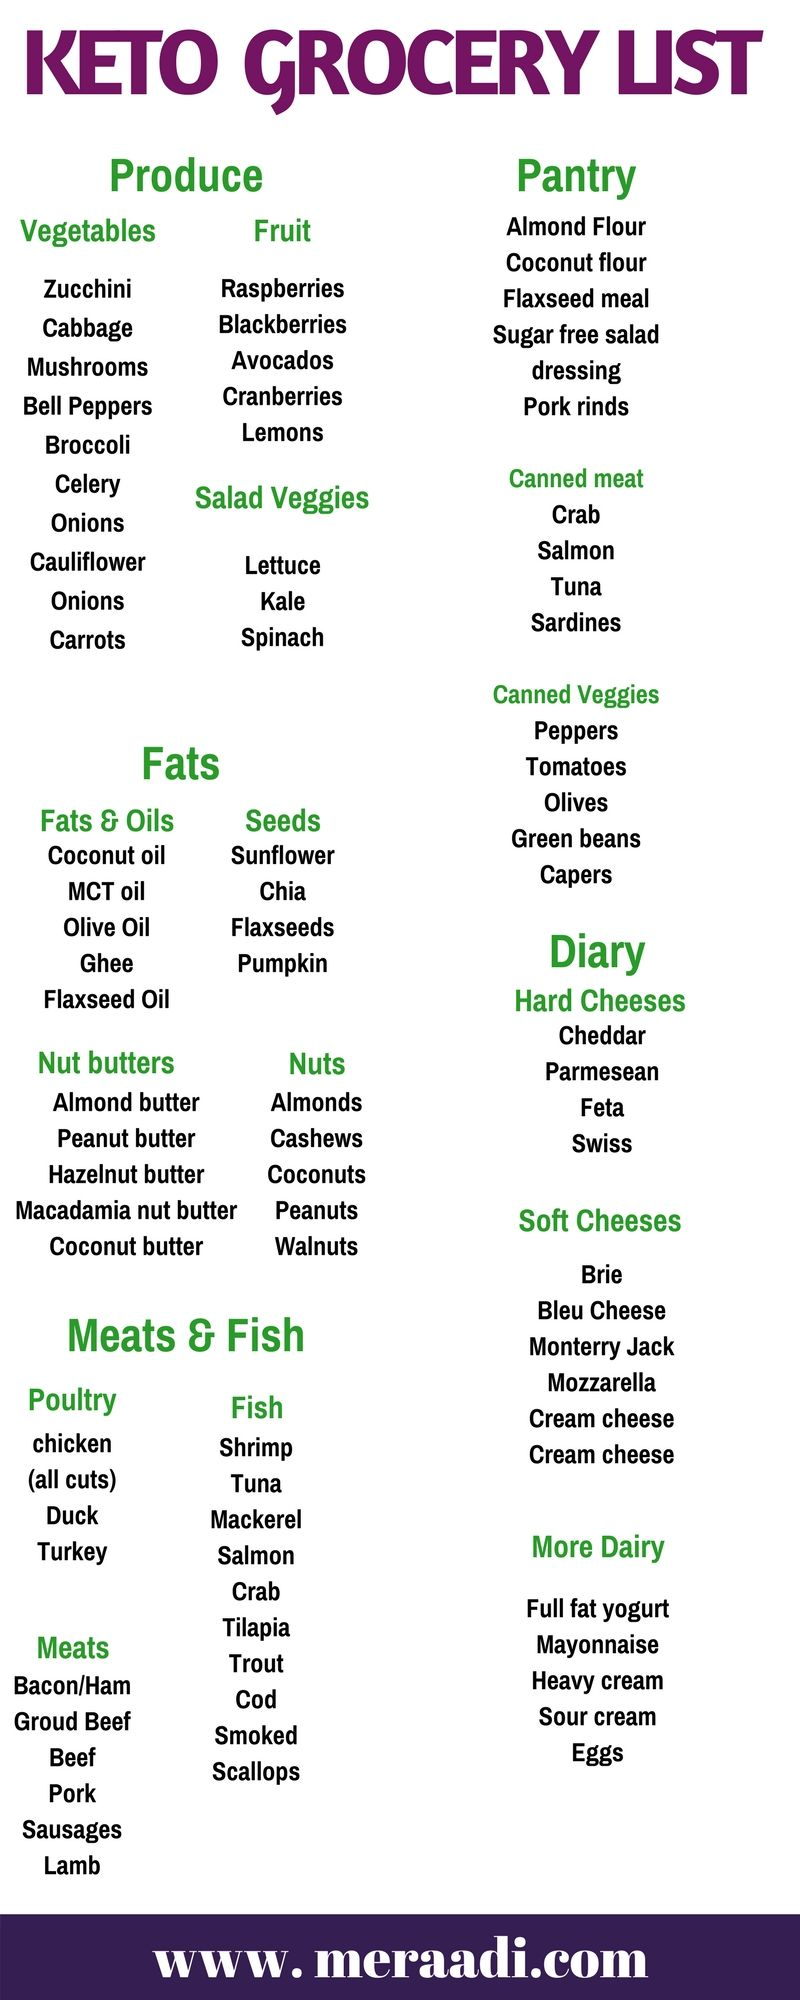 This Keto Grocery List Is The Best This Keto Shopping List Has All The Amazing Foods That You Can Eat Keto Grocery List Keto Diet Food List Keto Shopping List